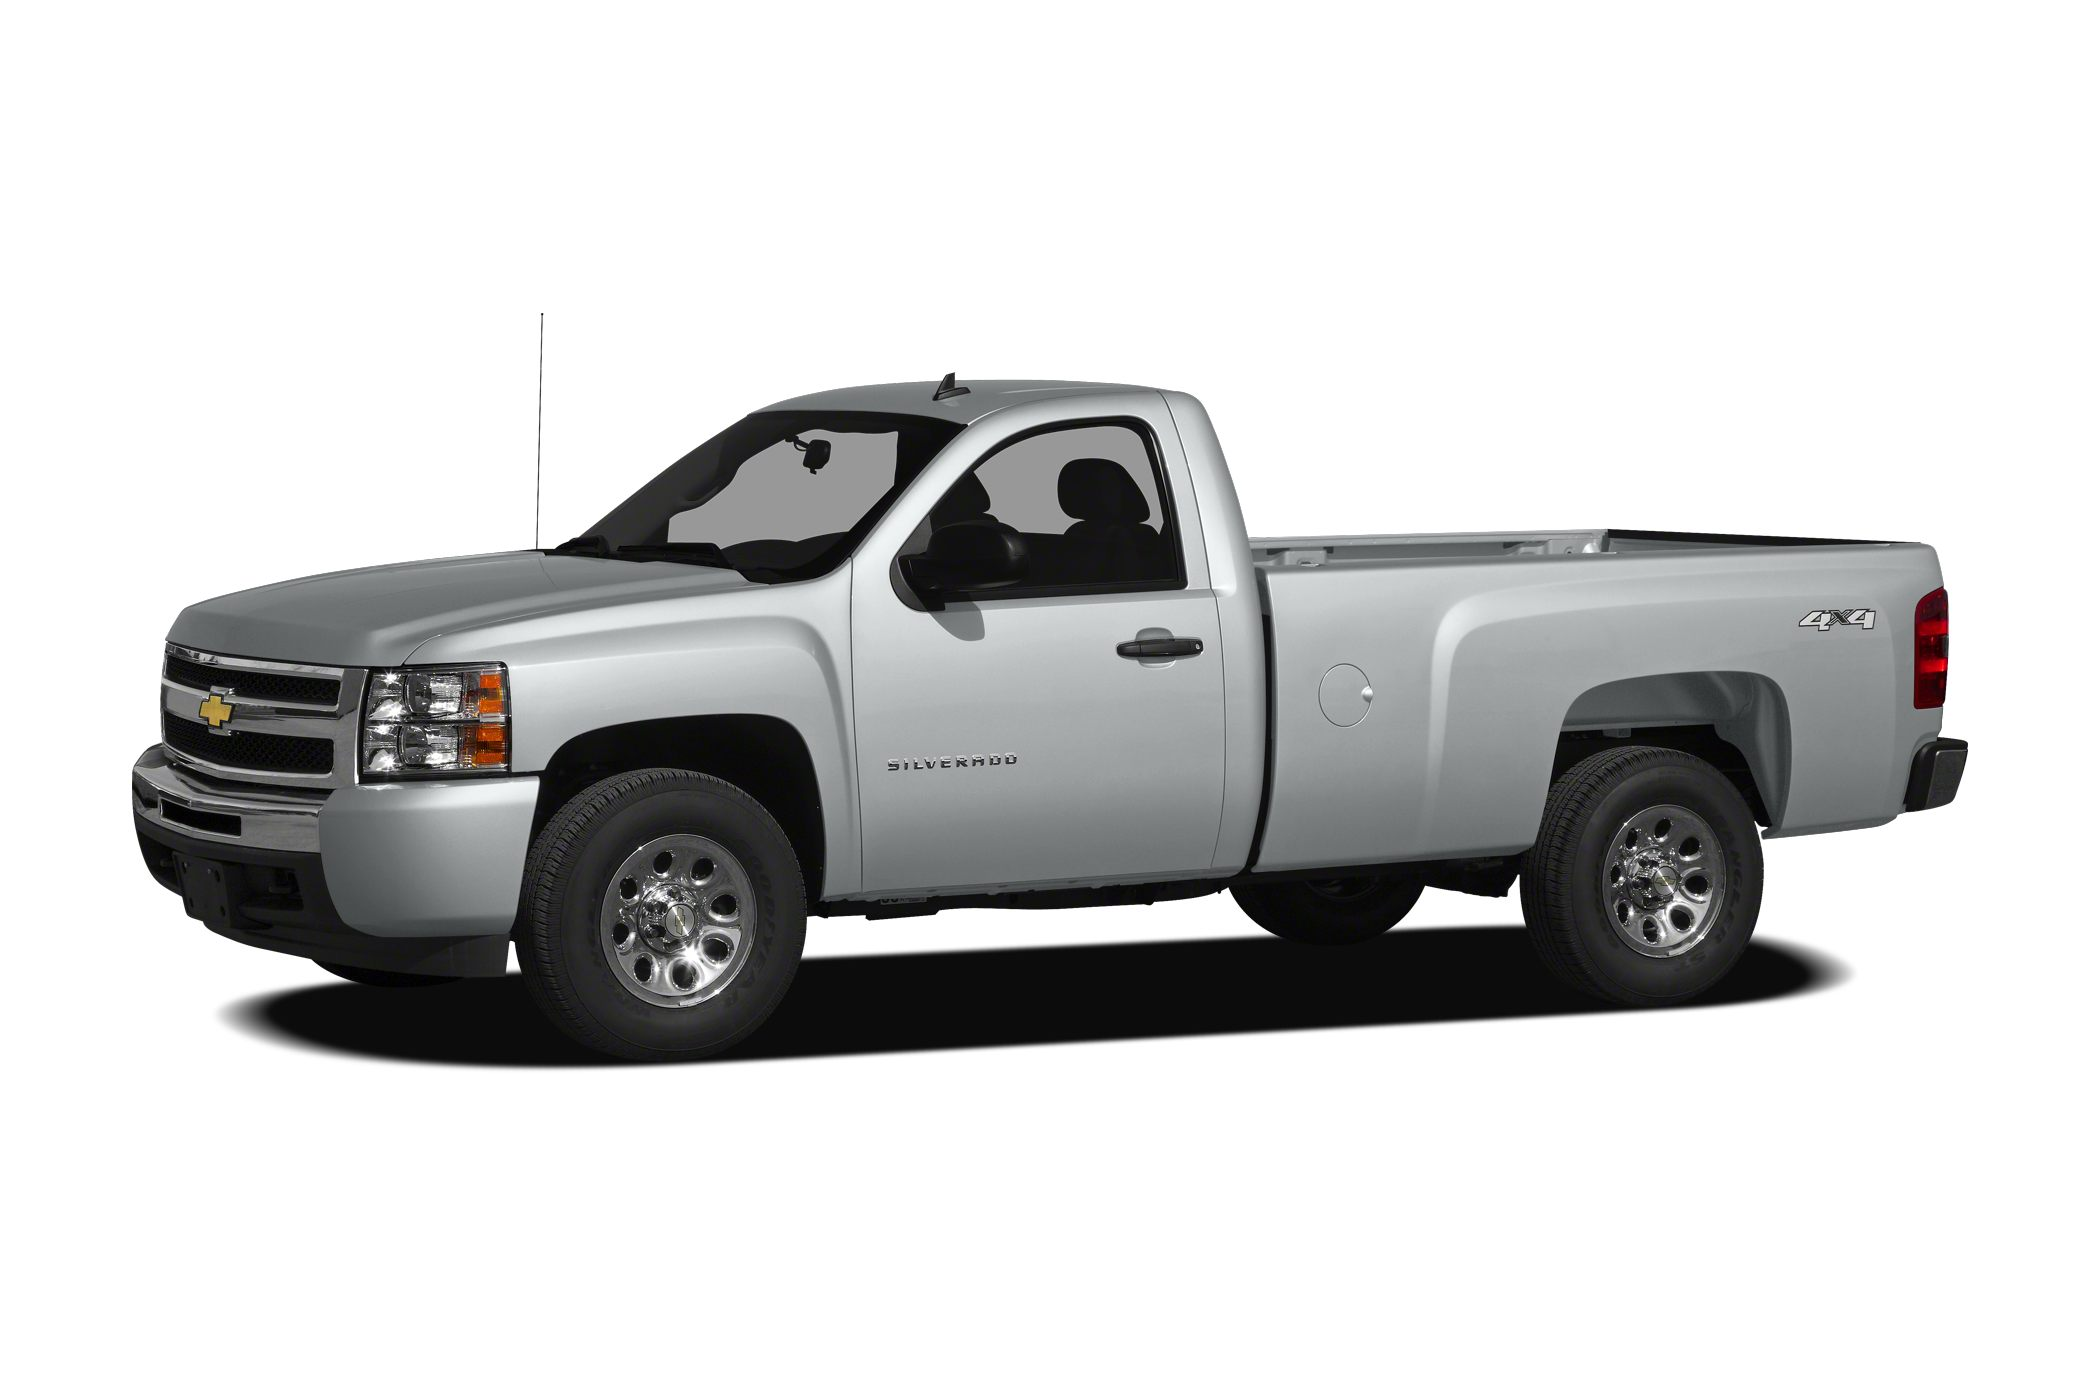 2011 Chevrolet Silverado 1500 Work Truck Extended Cab Pickup for sale in San Antonio for $0 with 74,948 miles